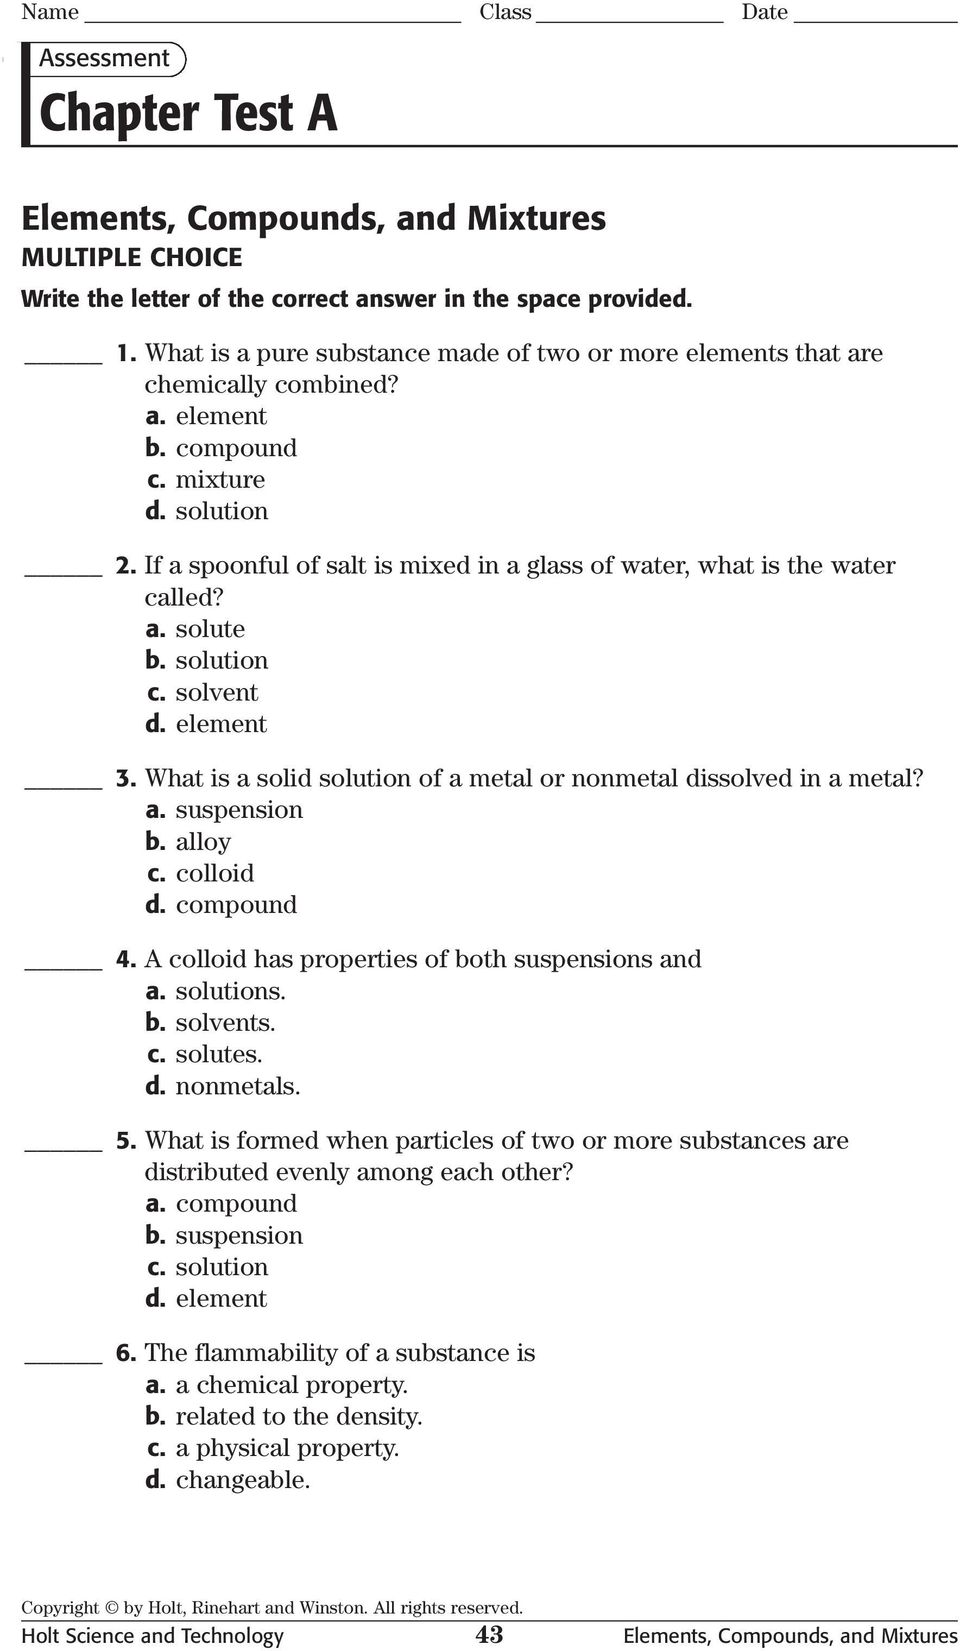 Holt Science And Technology Worksheet Answers - Checks Worksheet